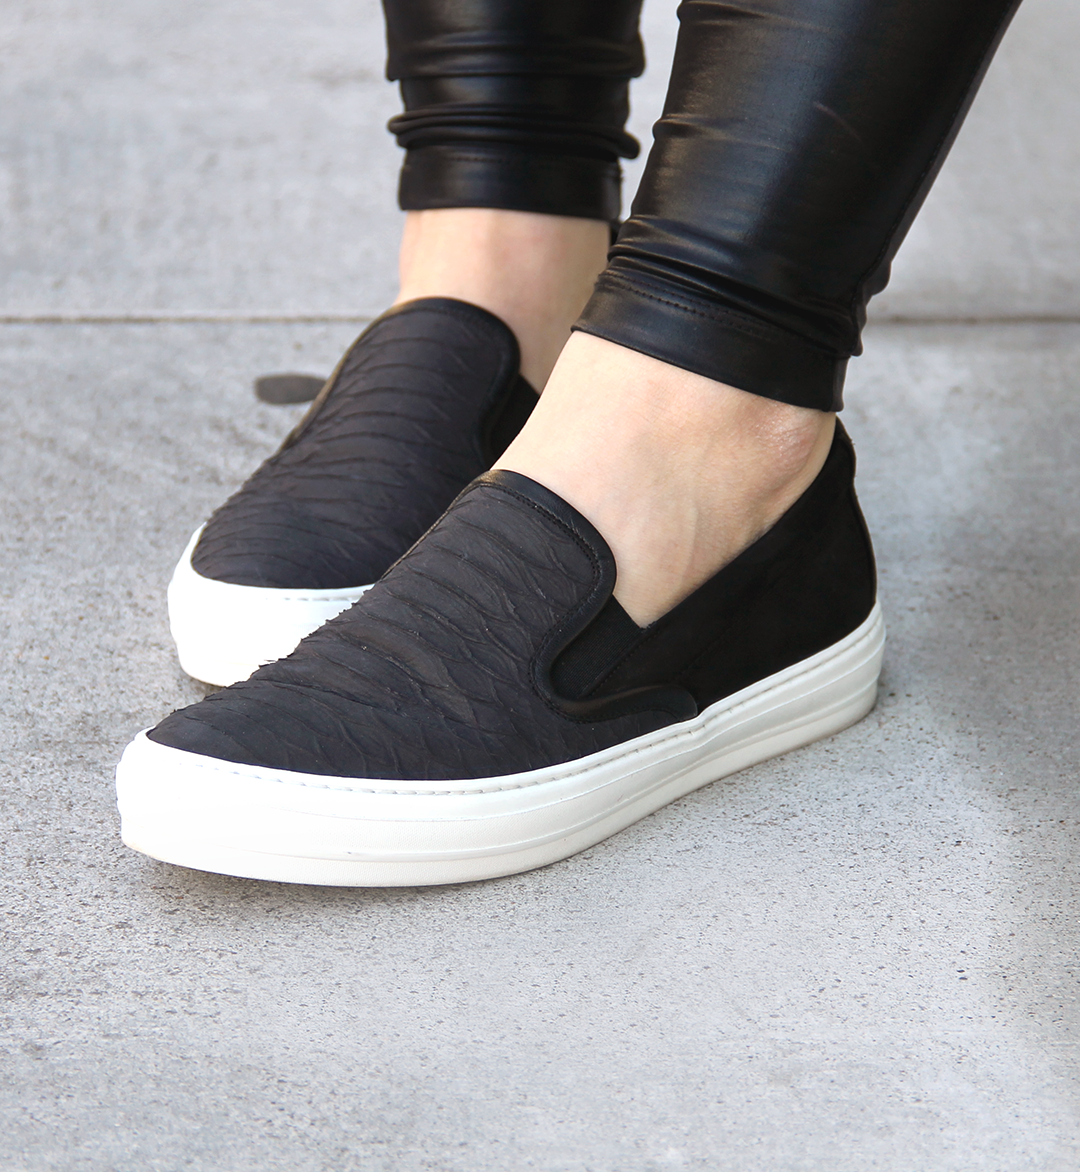 A casual alternative to loafers, slip-on sneakers are a versatile addition to any shoe collection. Look to luxe finishes and added embellishments for high fashion appeal, or classic canvas construction and fun prints for a more laidback approach.